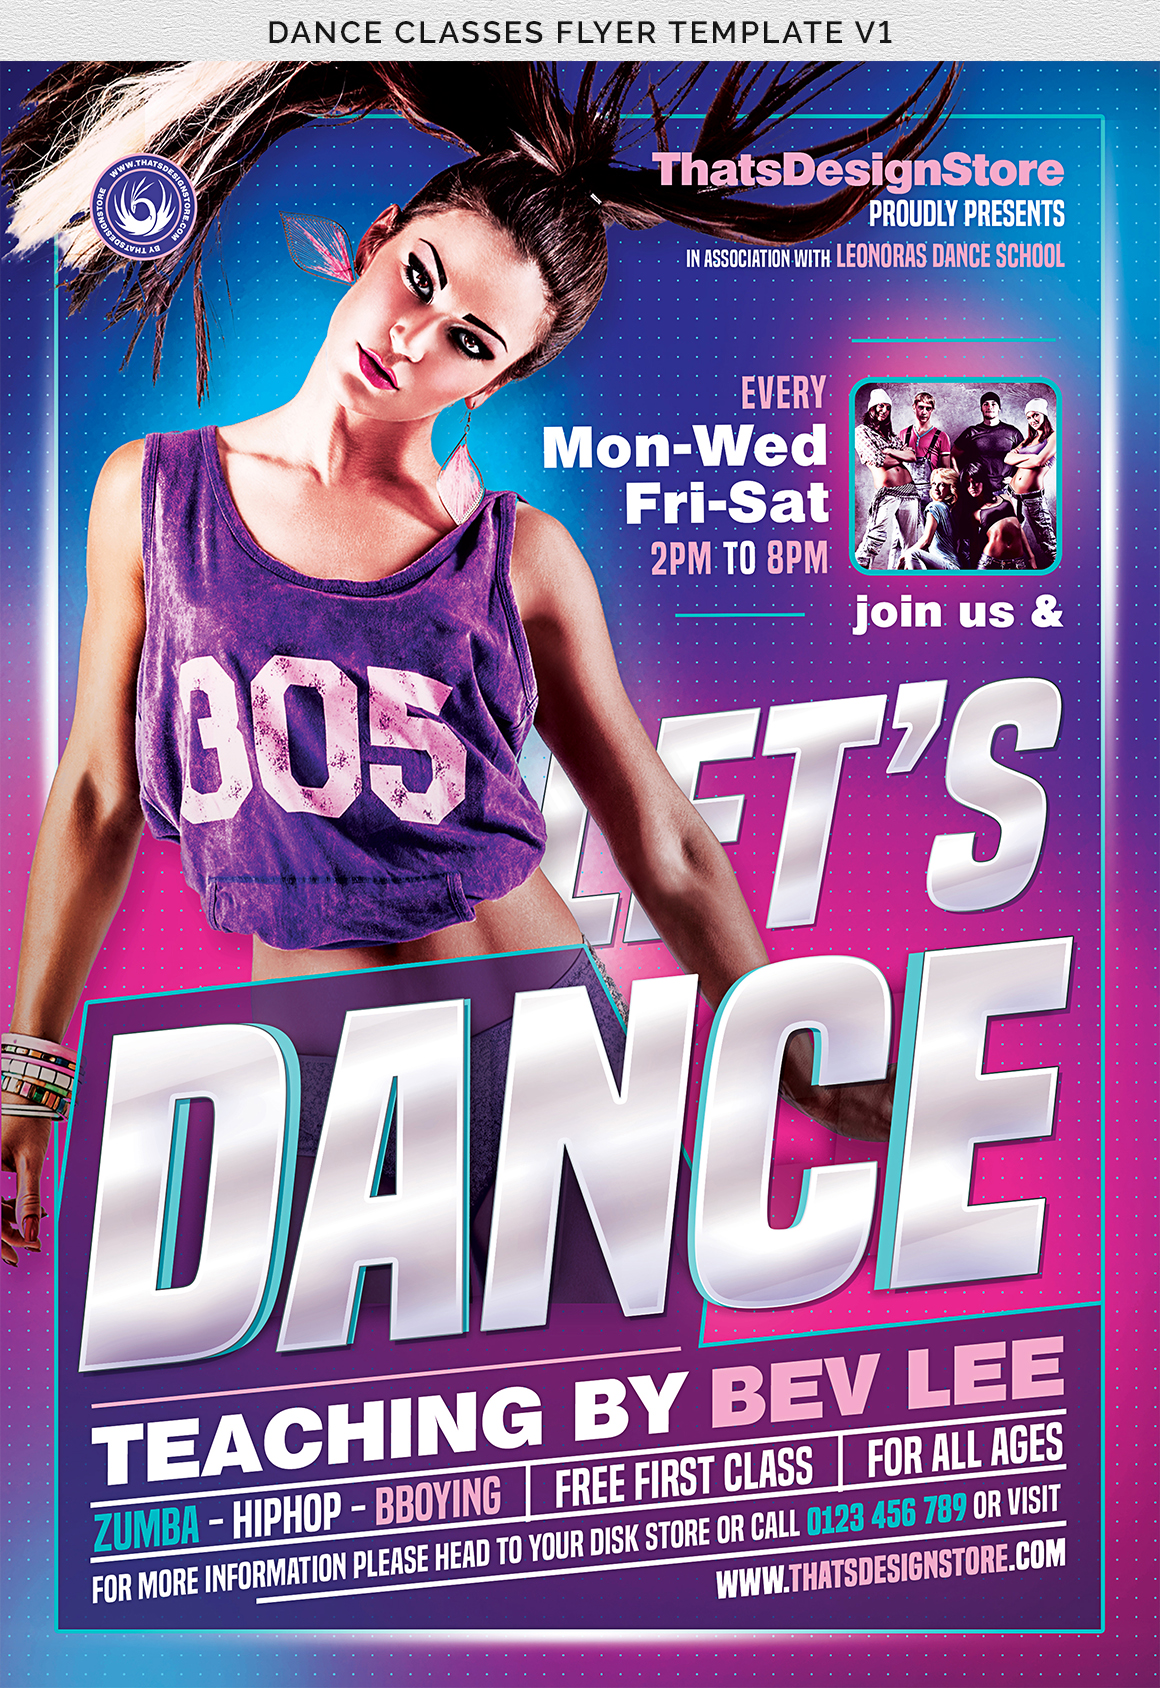 Dance Classes Flyer Template V1 example image 7